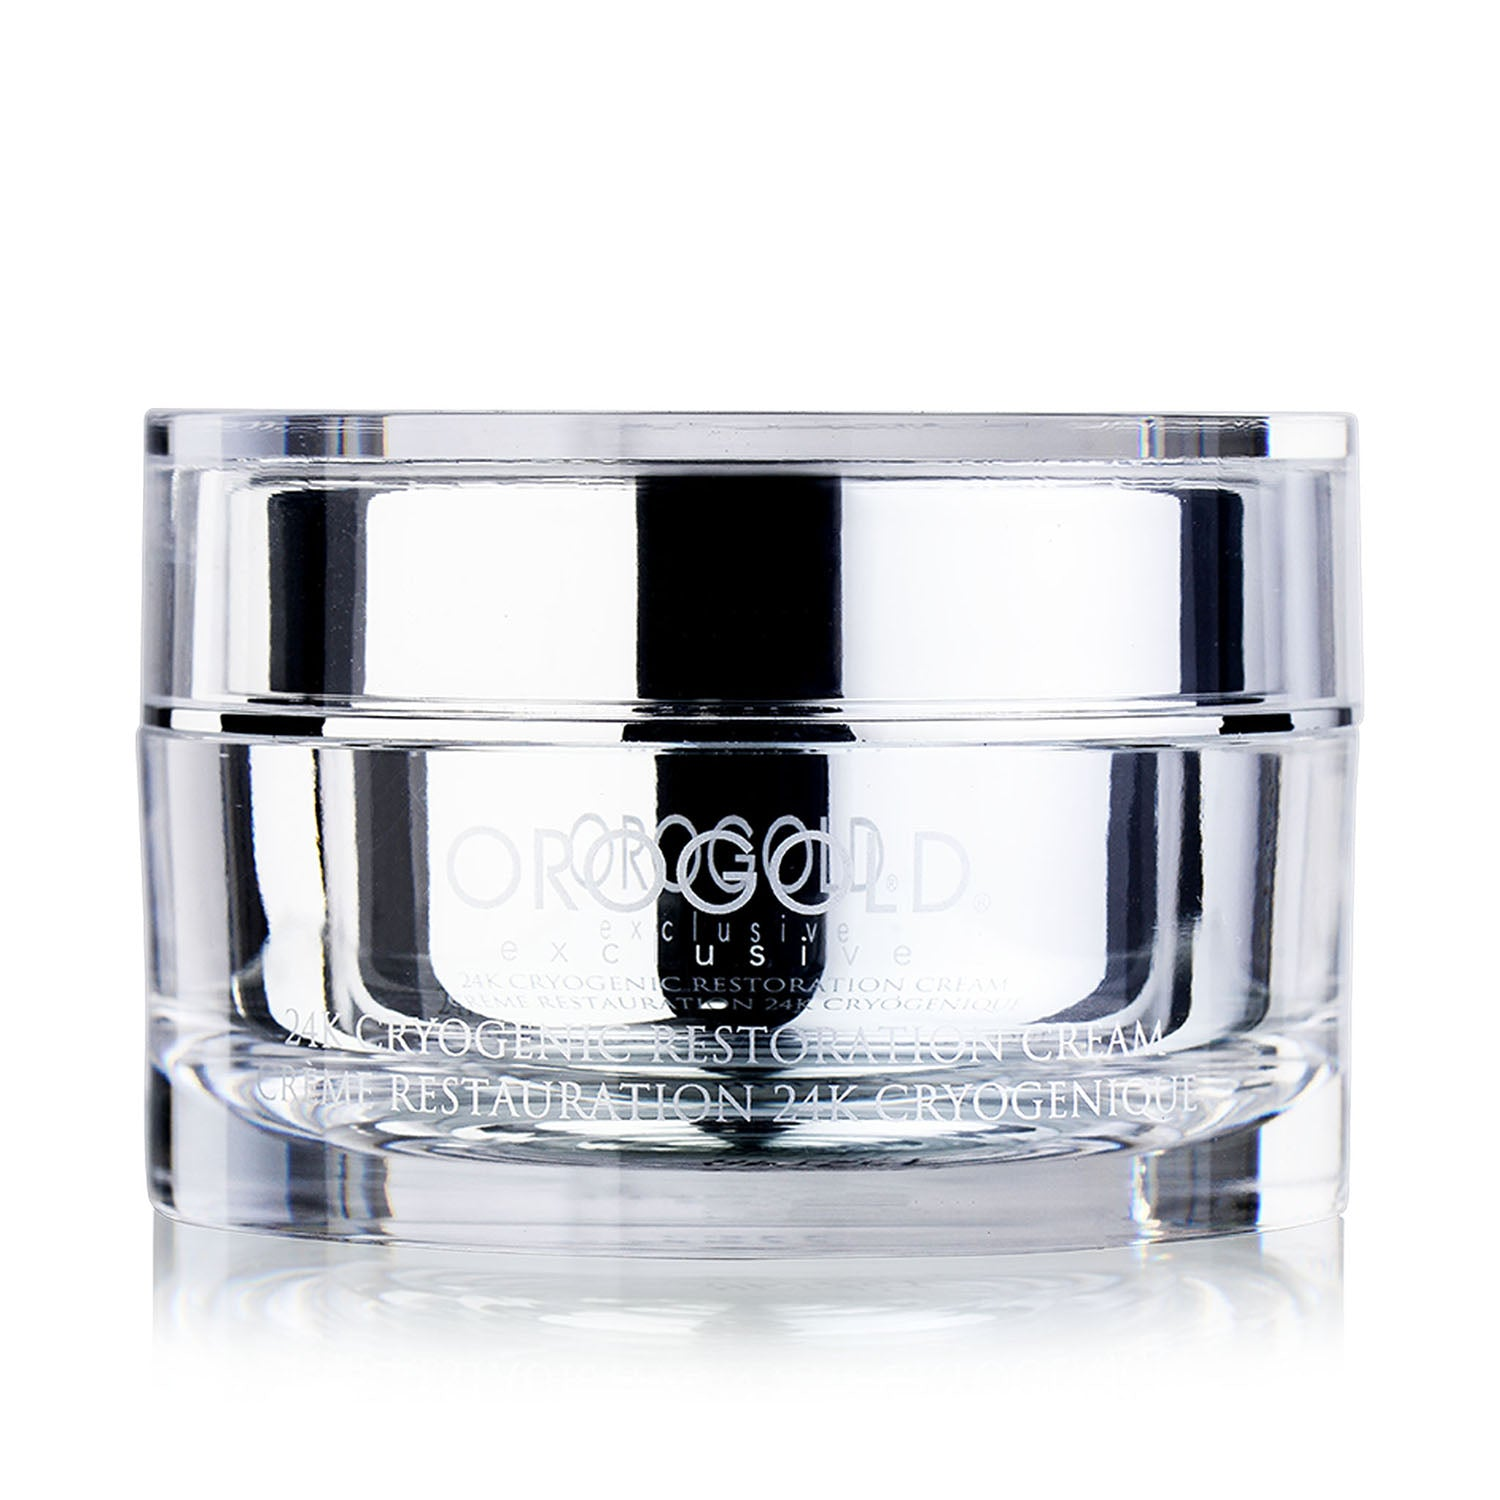 orogold 24k cryogenic anti wrinkle restoration cream